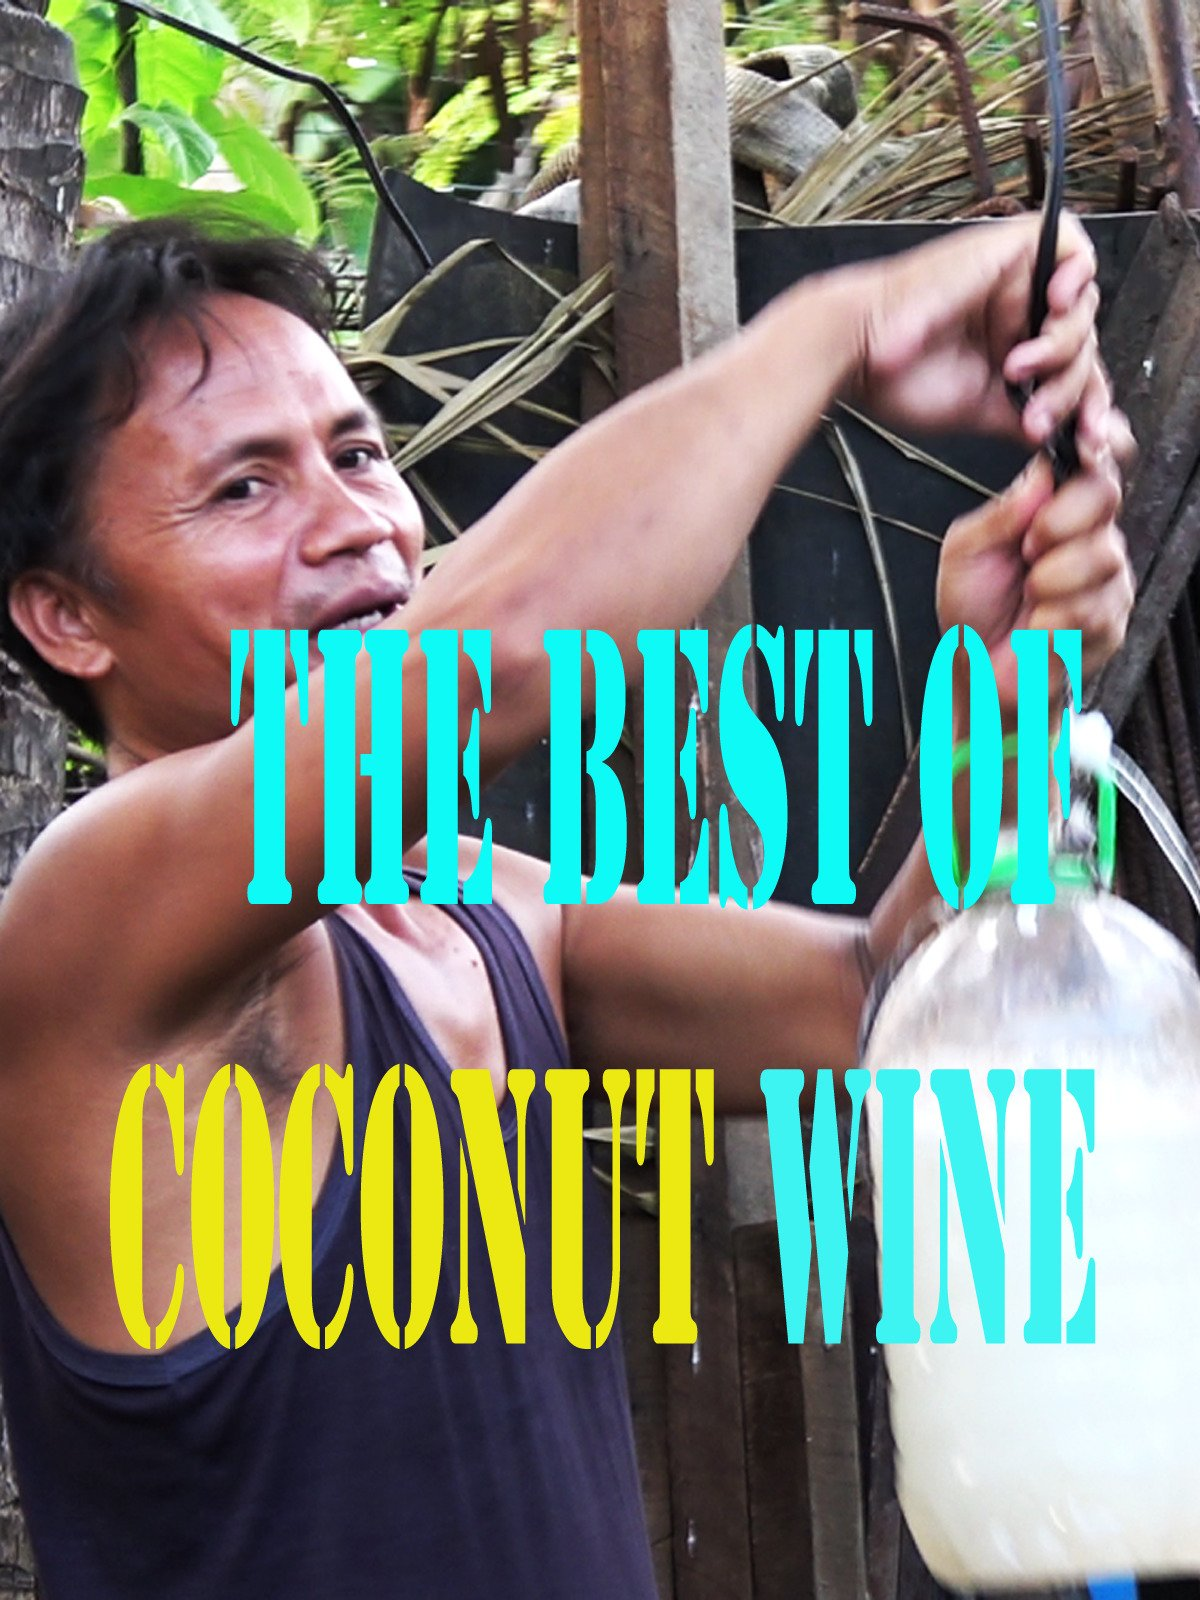 The Best of Coconut Wine